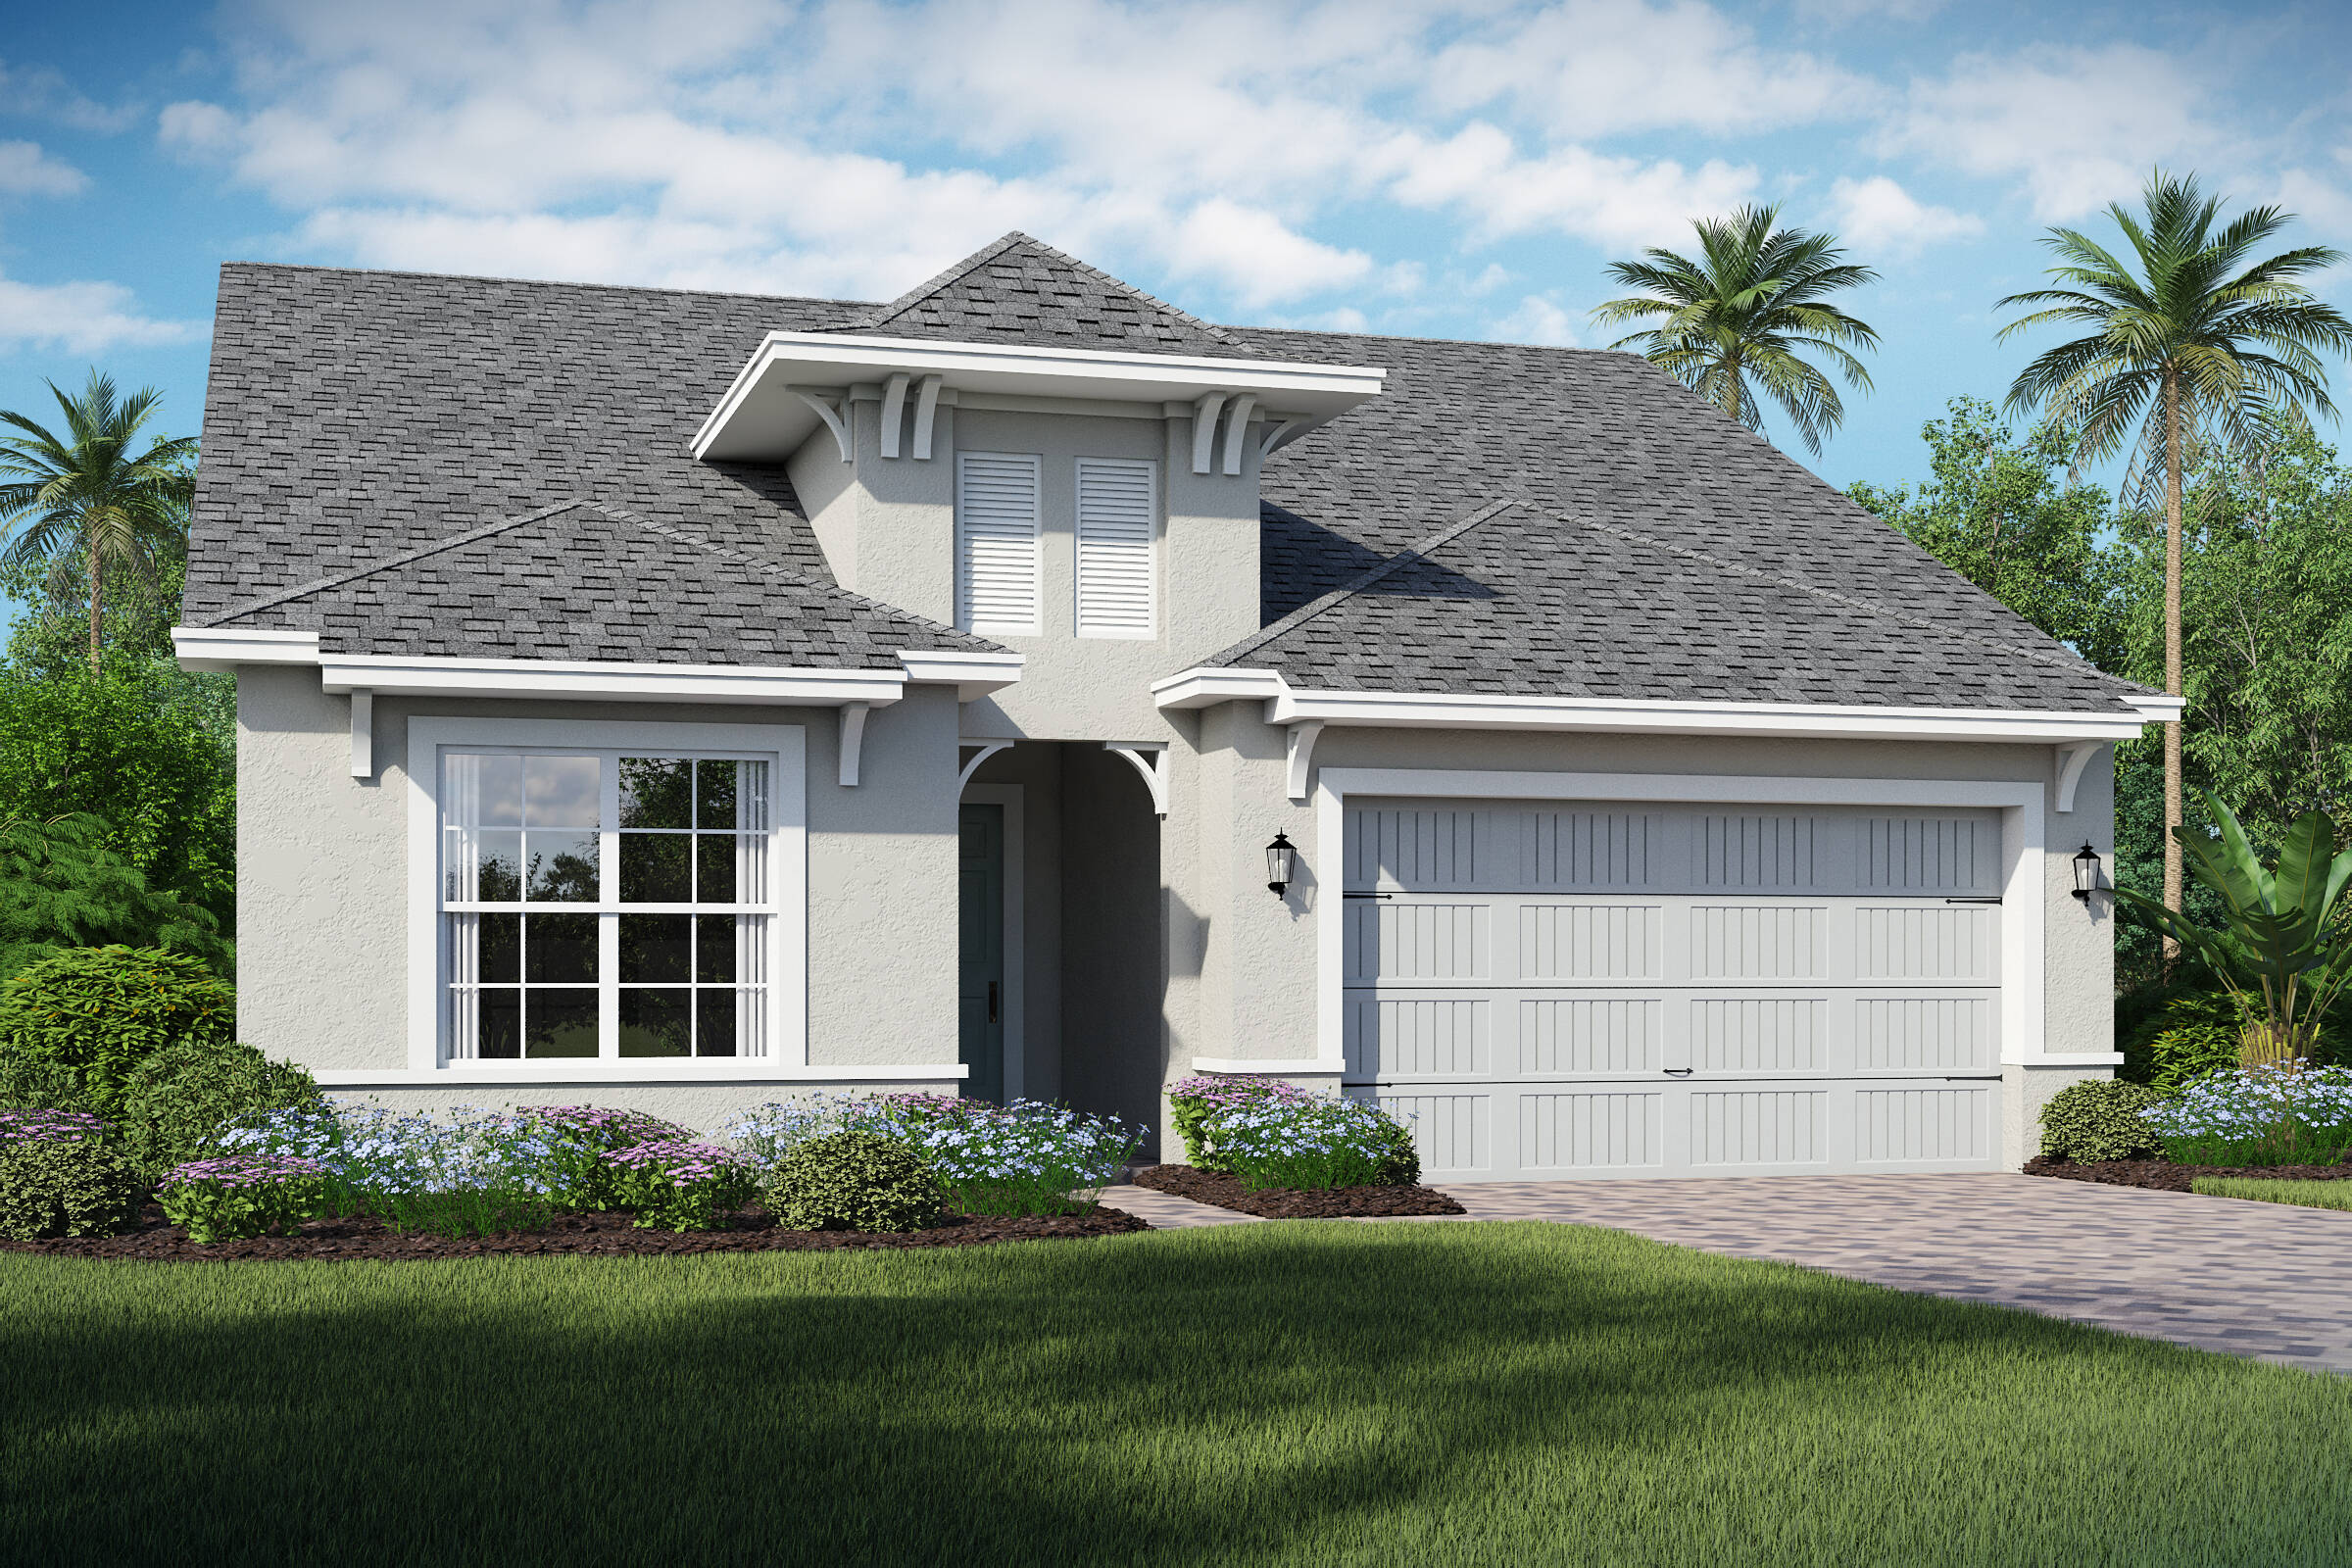 Barbados-B-Bonus-elev new homes in orlando